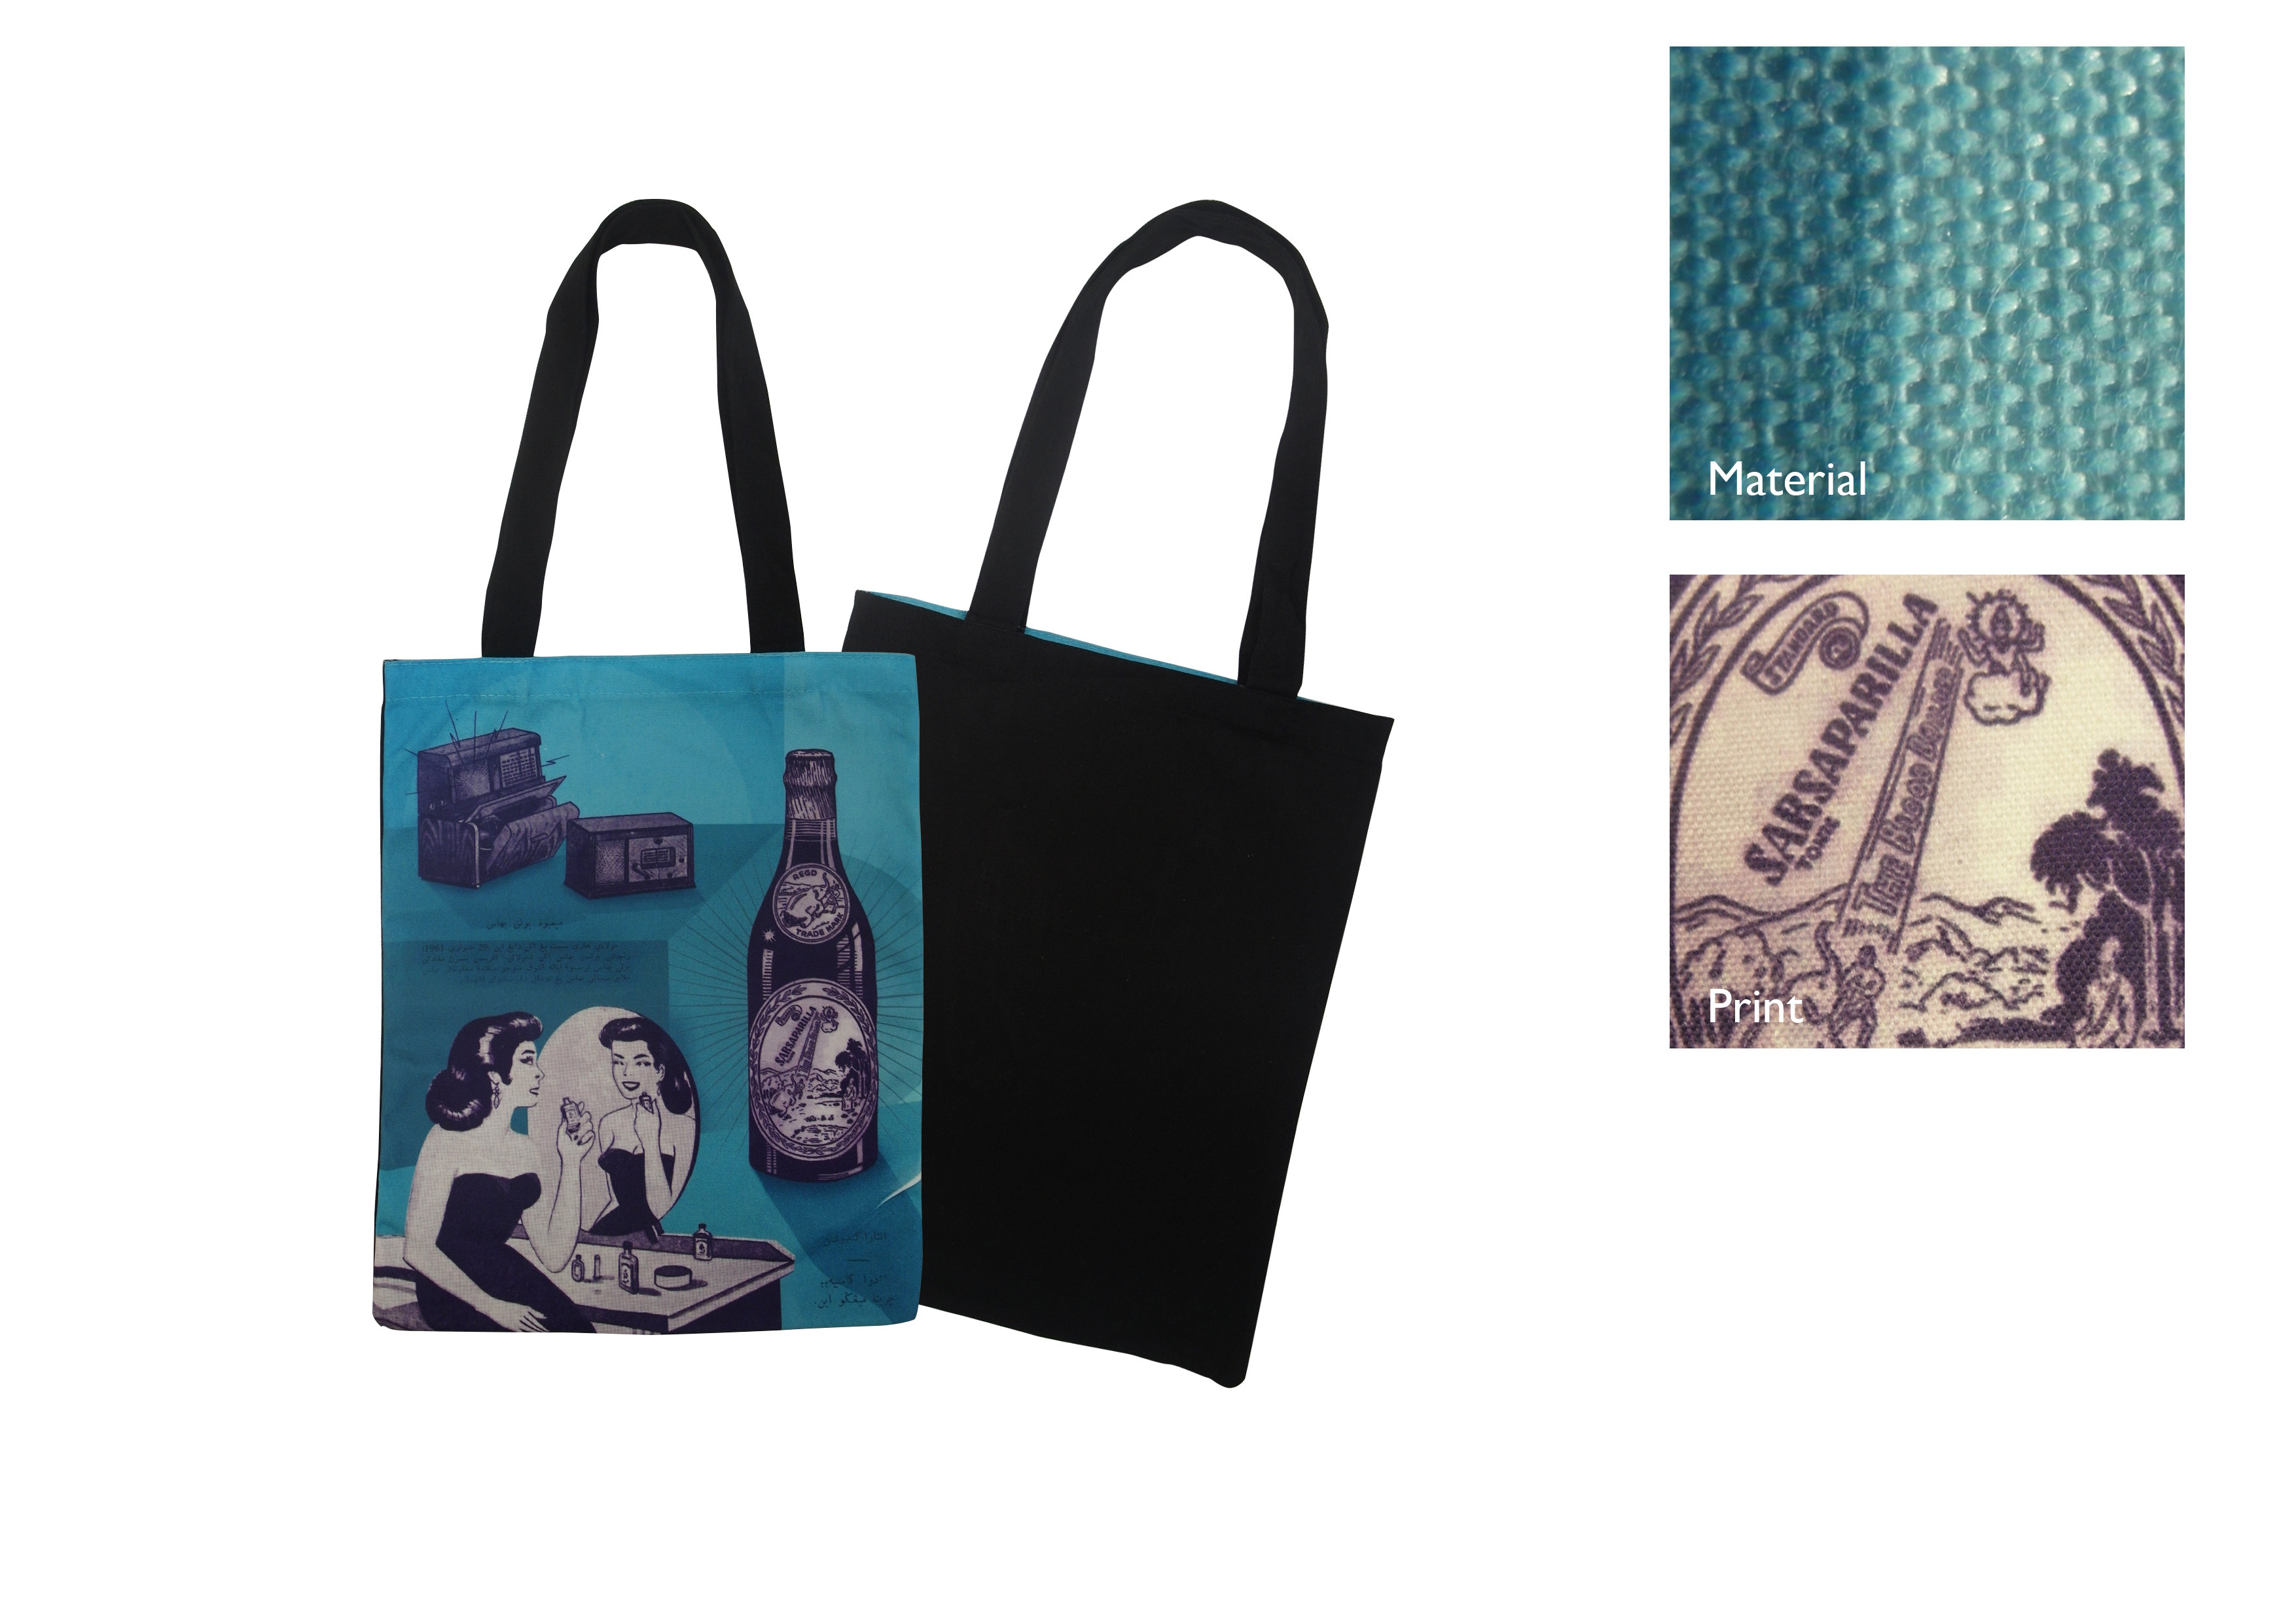 Malay Heritage Centre Tote Bag